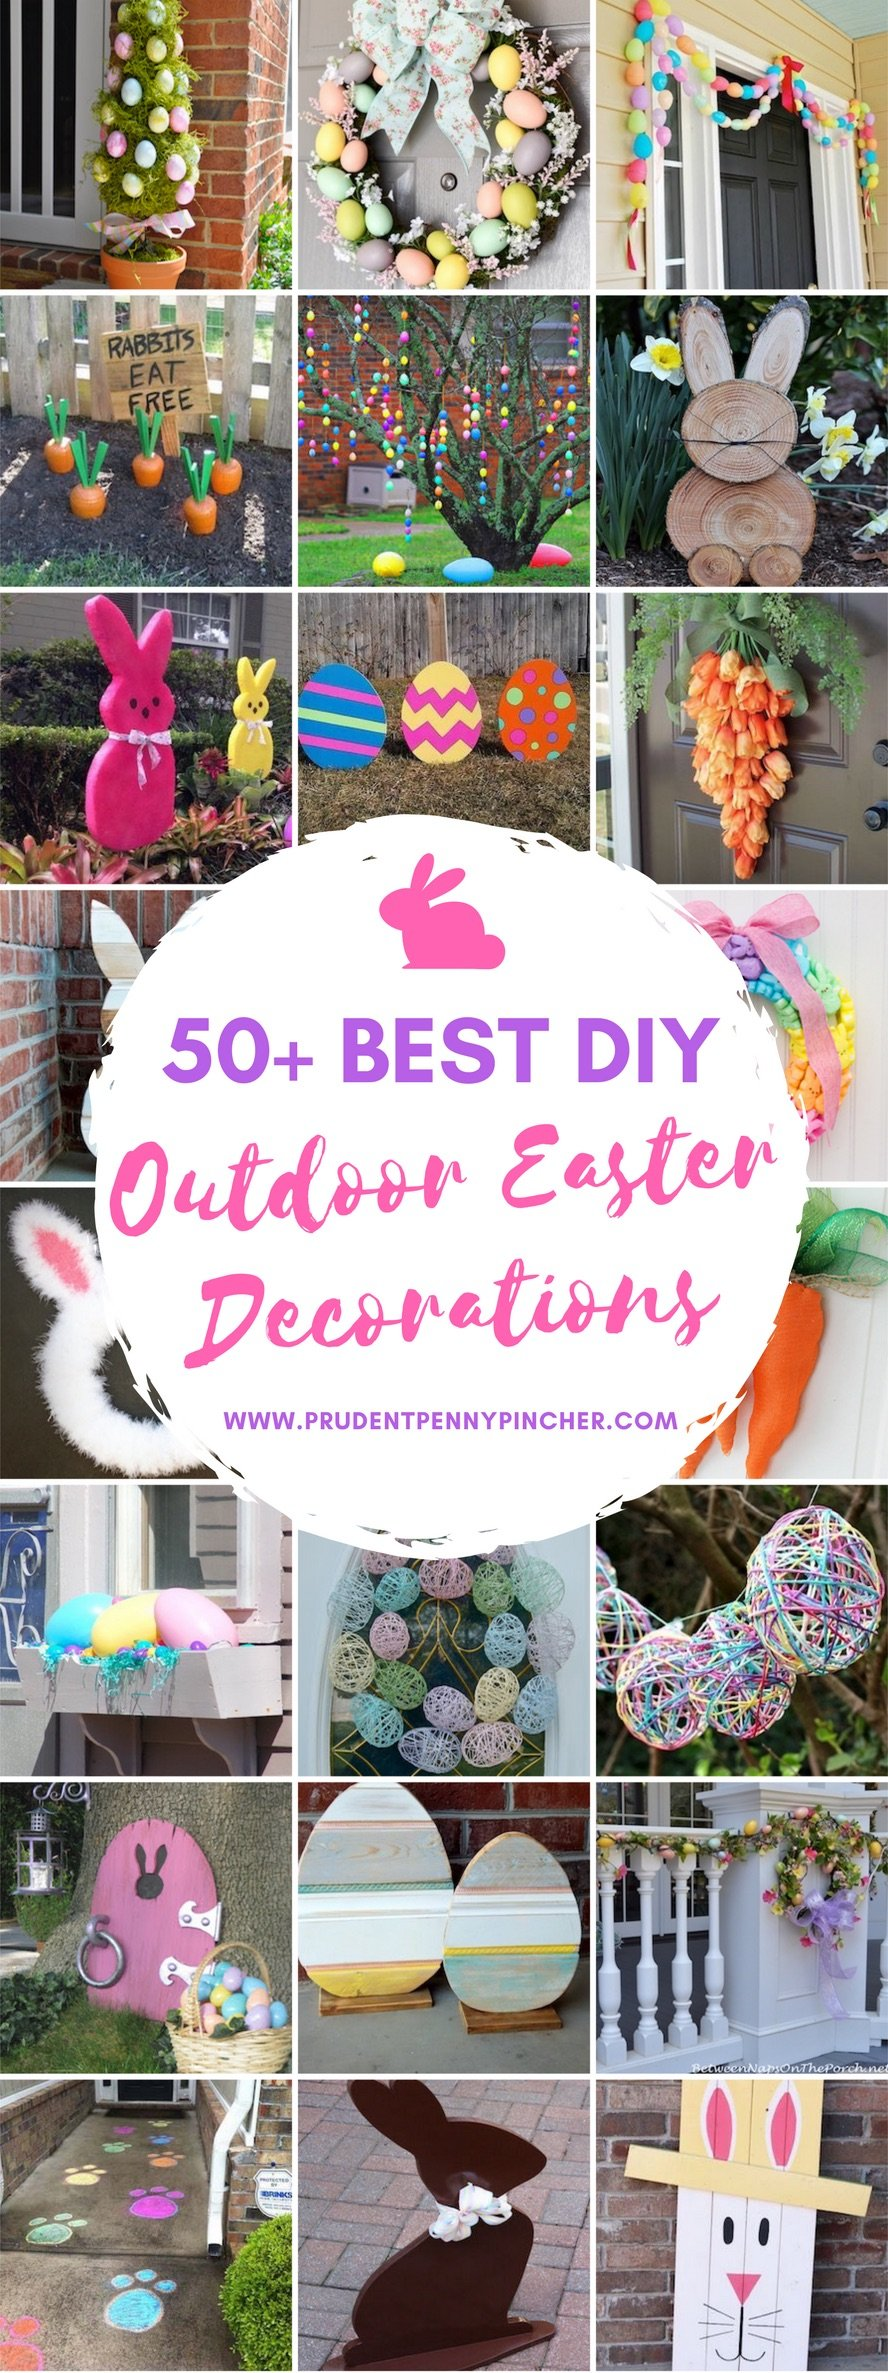 50 Best DIY Outdoor Easter Decorations - Prudent Penny Pincher